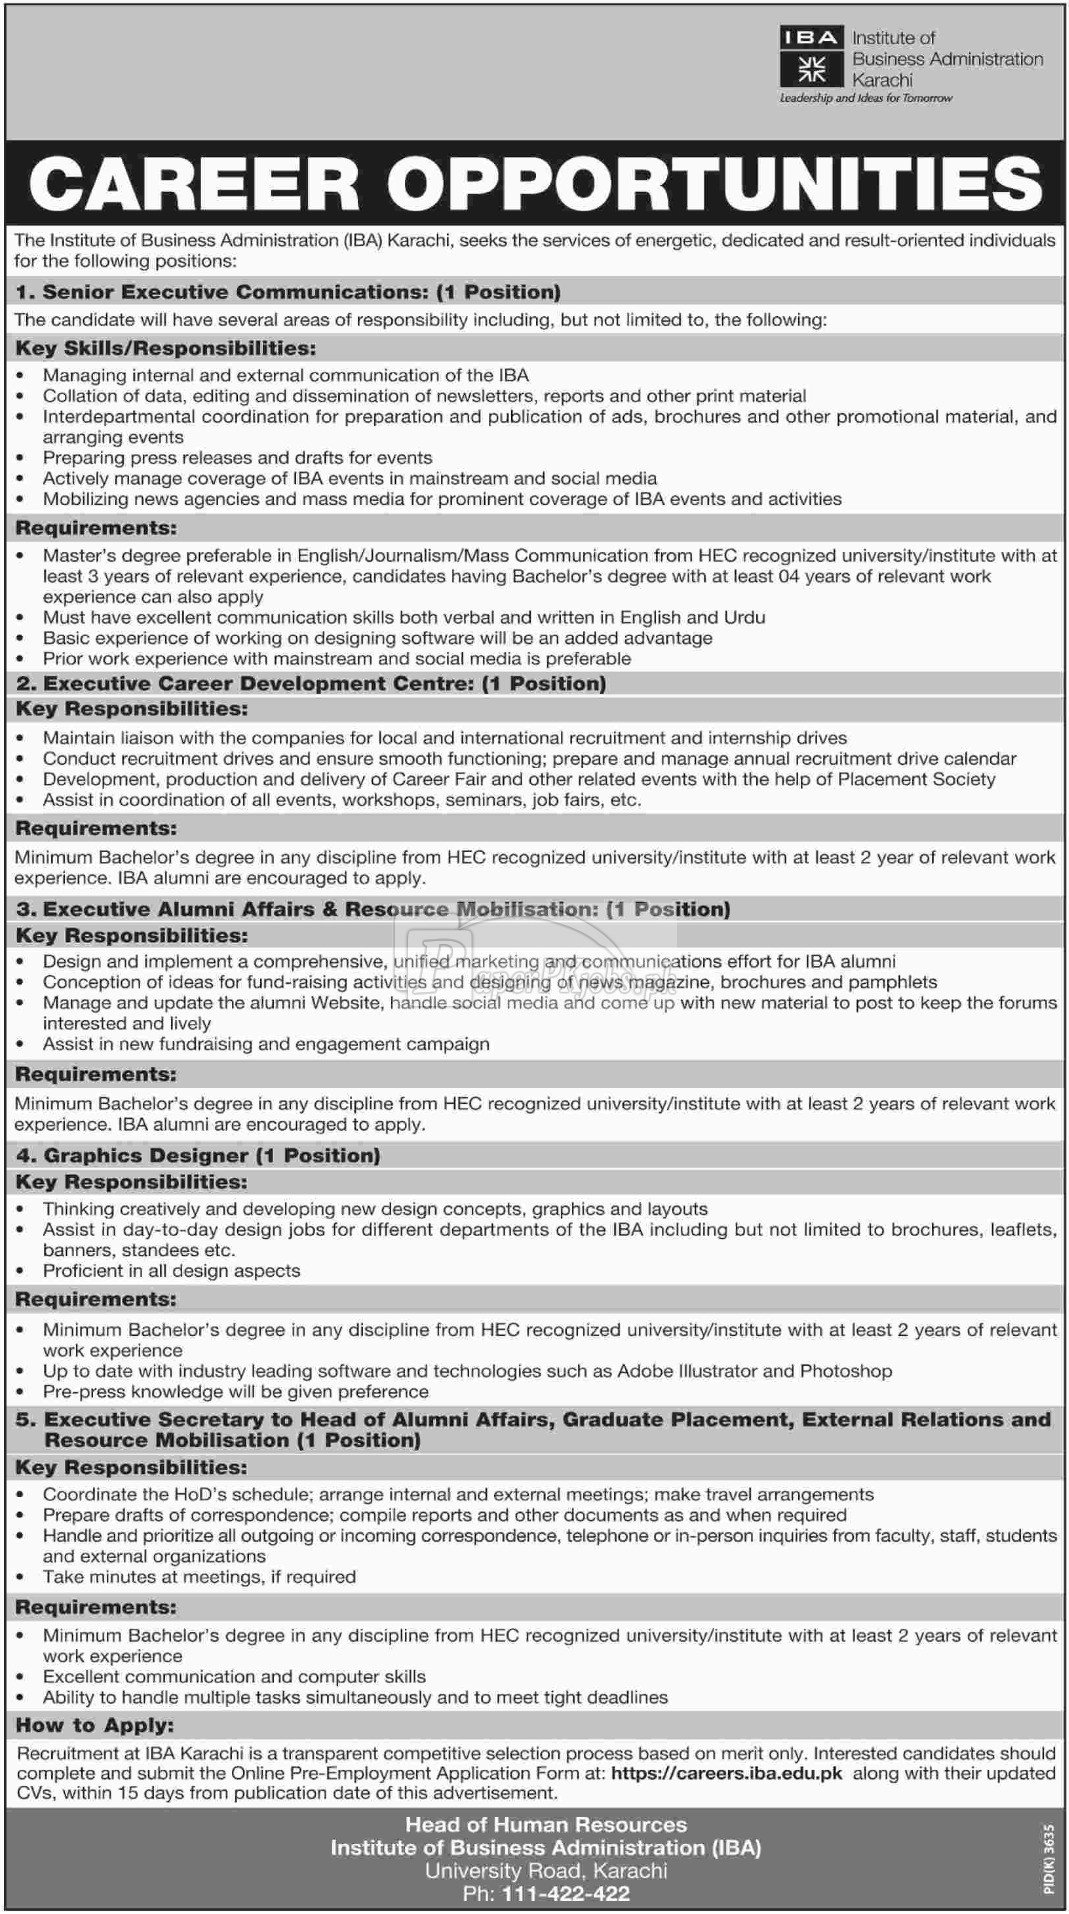 Institute of Business Administration IBA Karachi Jobs 2018